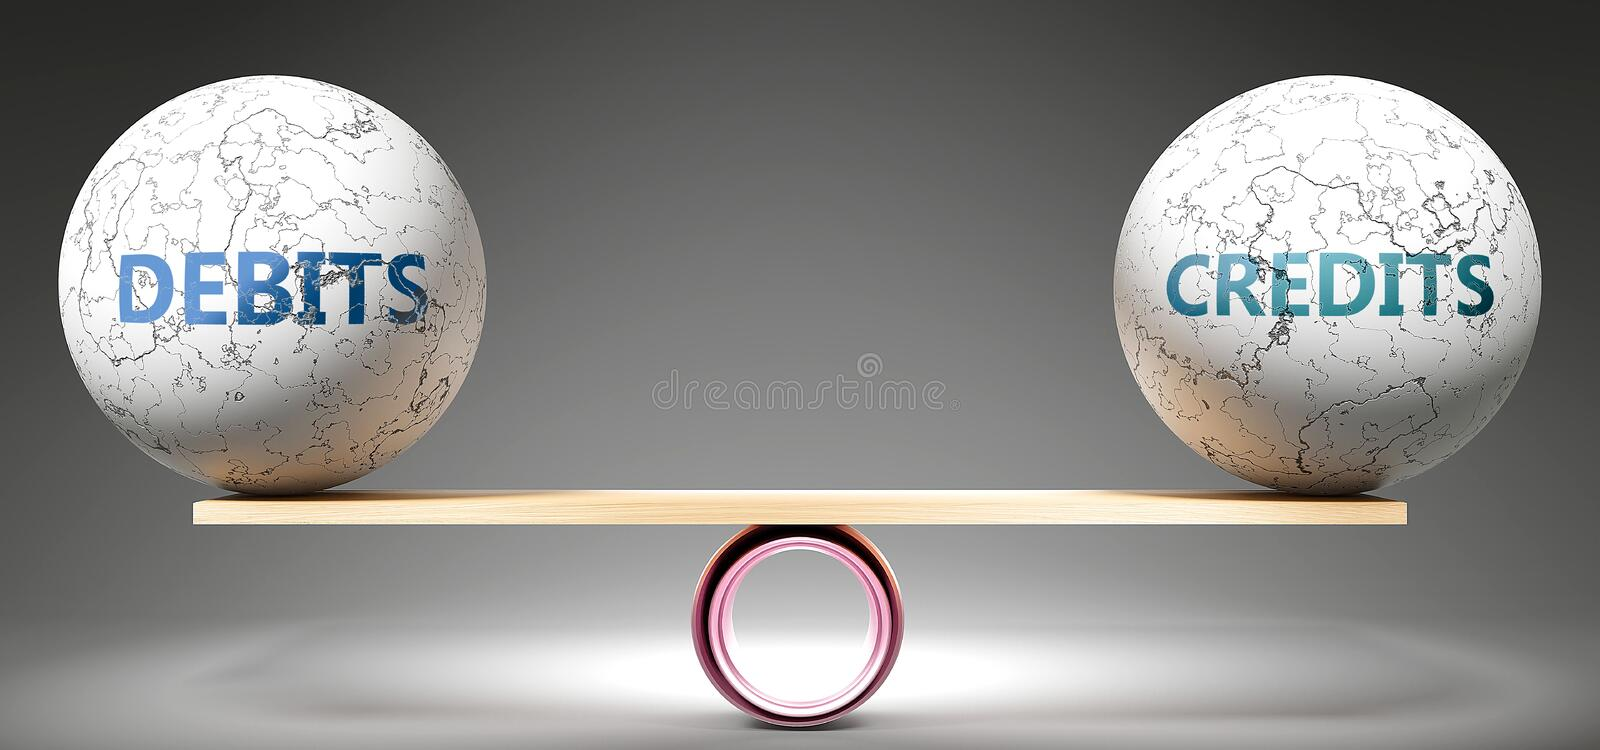 Debits and credits in balance - pictured as balanced balls on scale that symbolize harmony and equity between Debits and credits. That is good and beneficial vector illustration